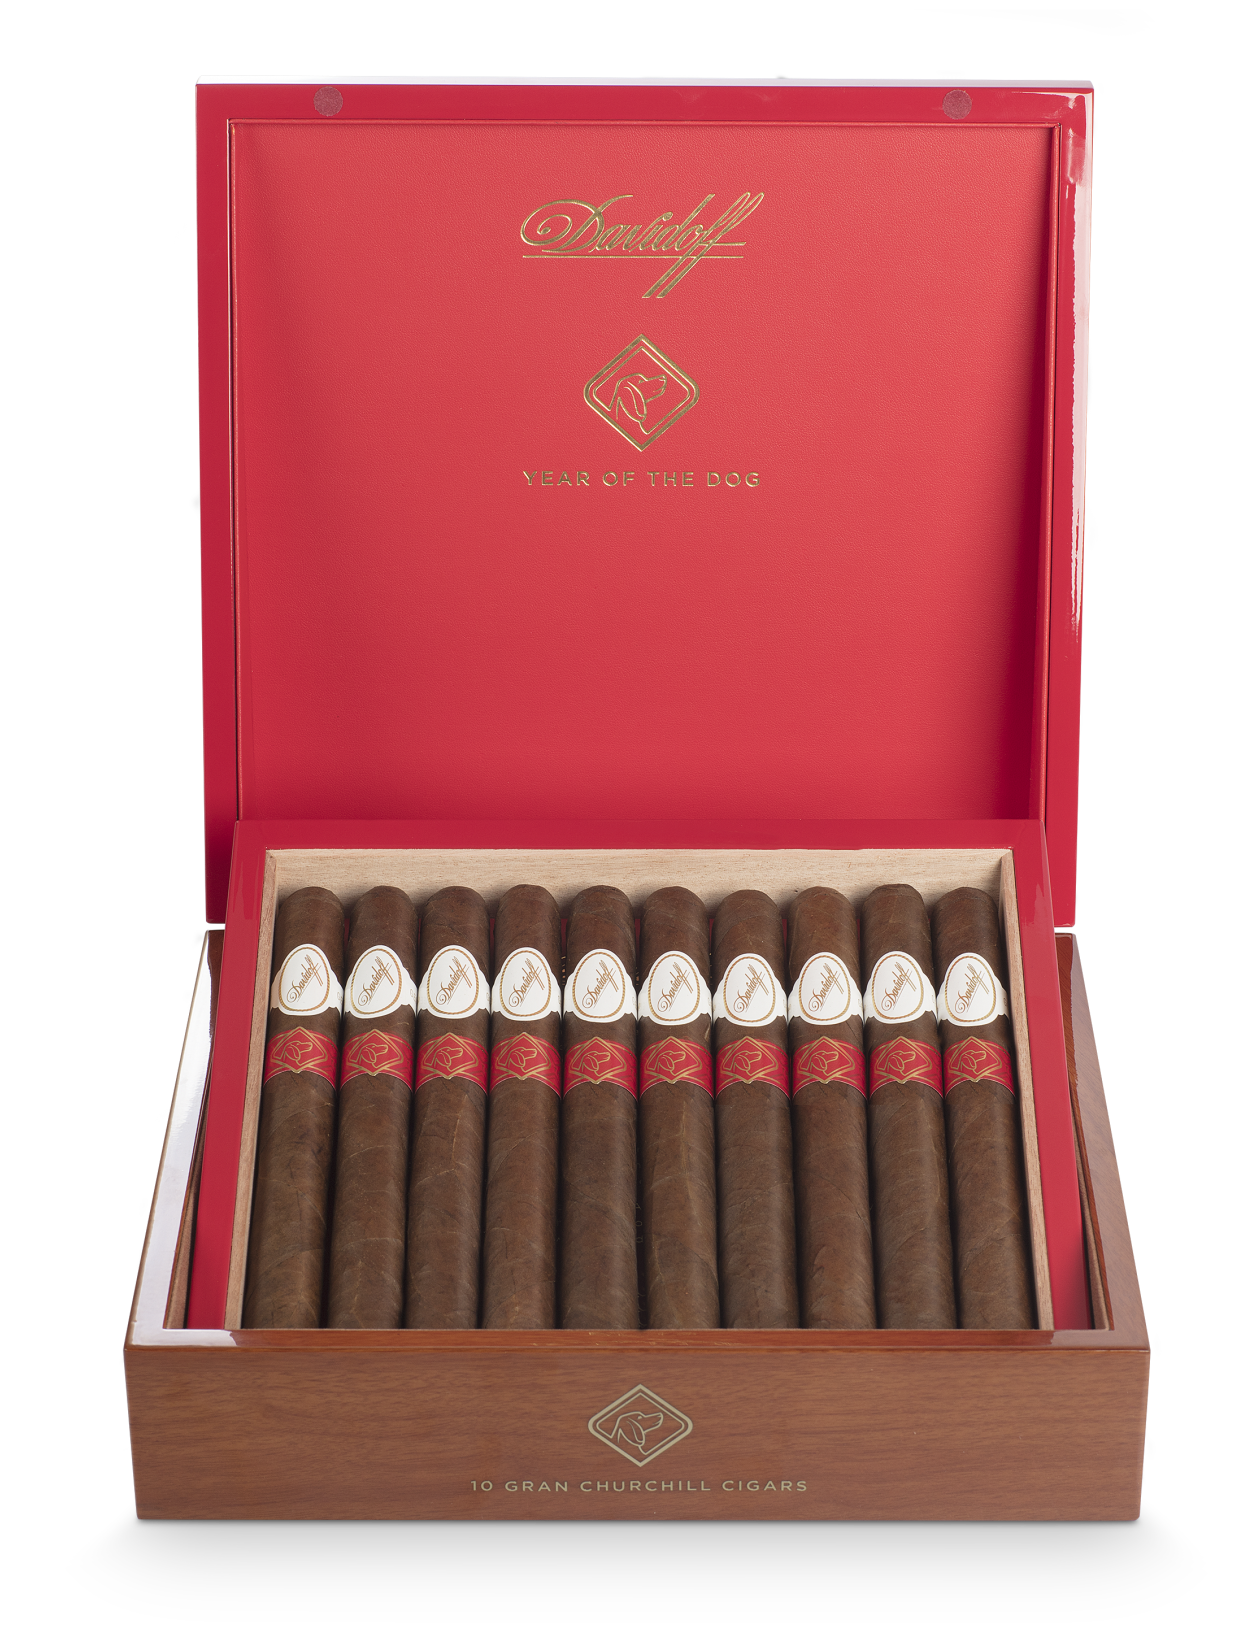 Davidoff Year of the Dog Limited Edition 2018 Box